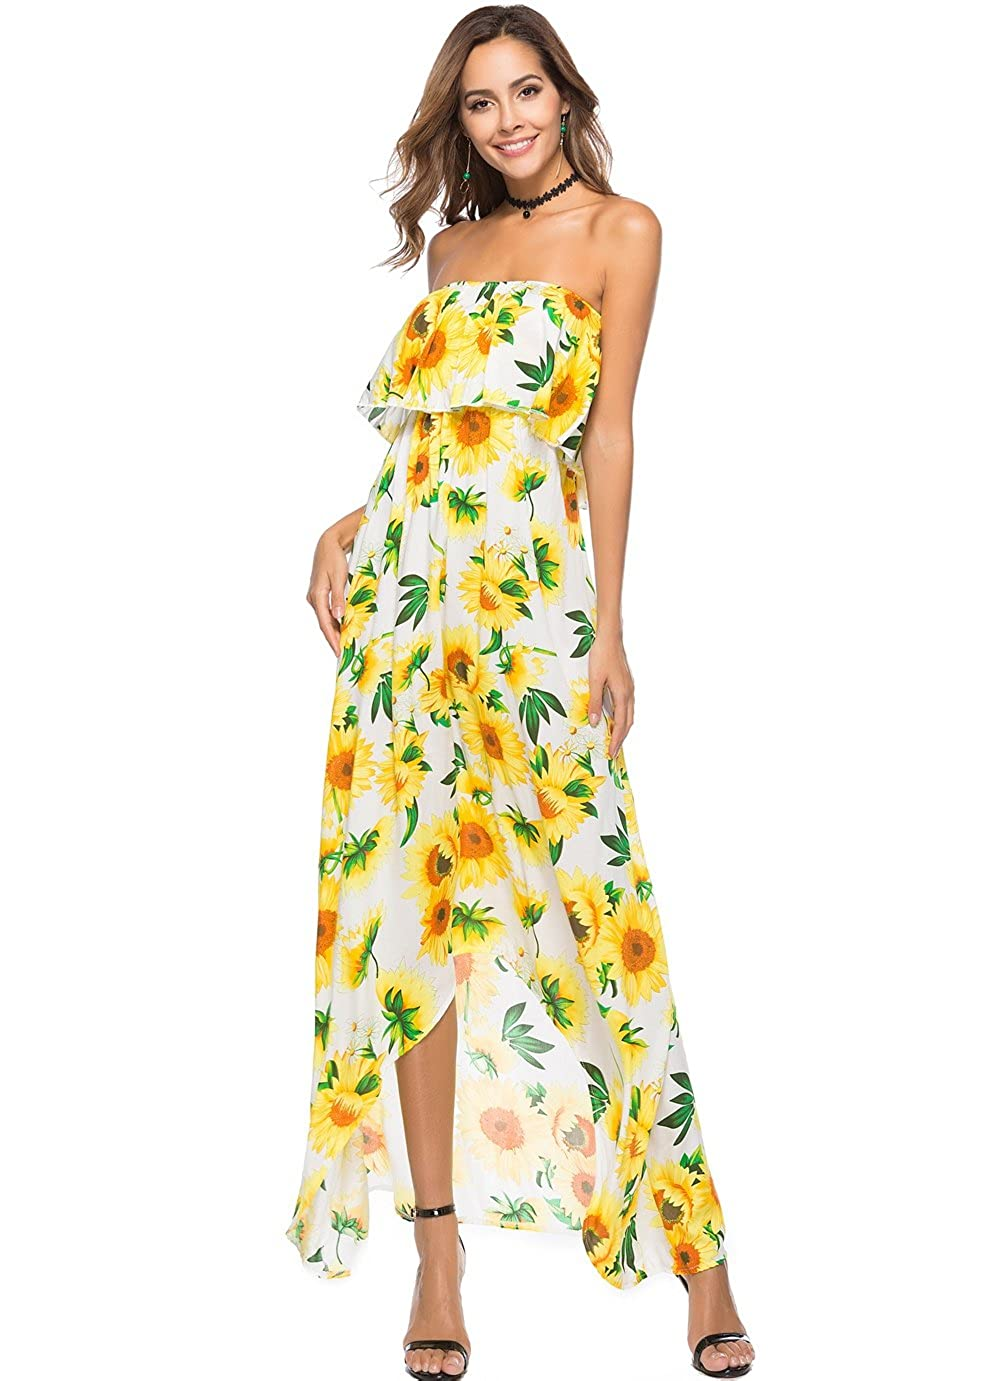 49586da29b1 Top 10 wholesale Sunflower Long Dress - Chinabrands.com